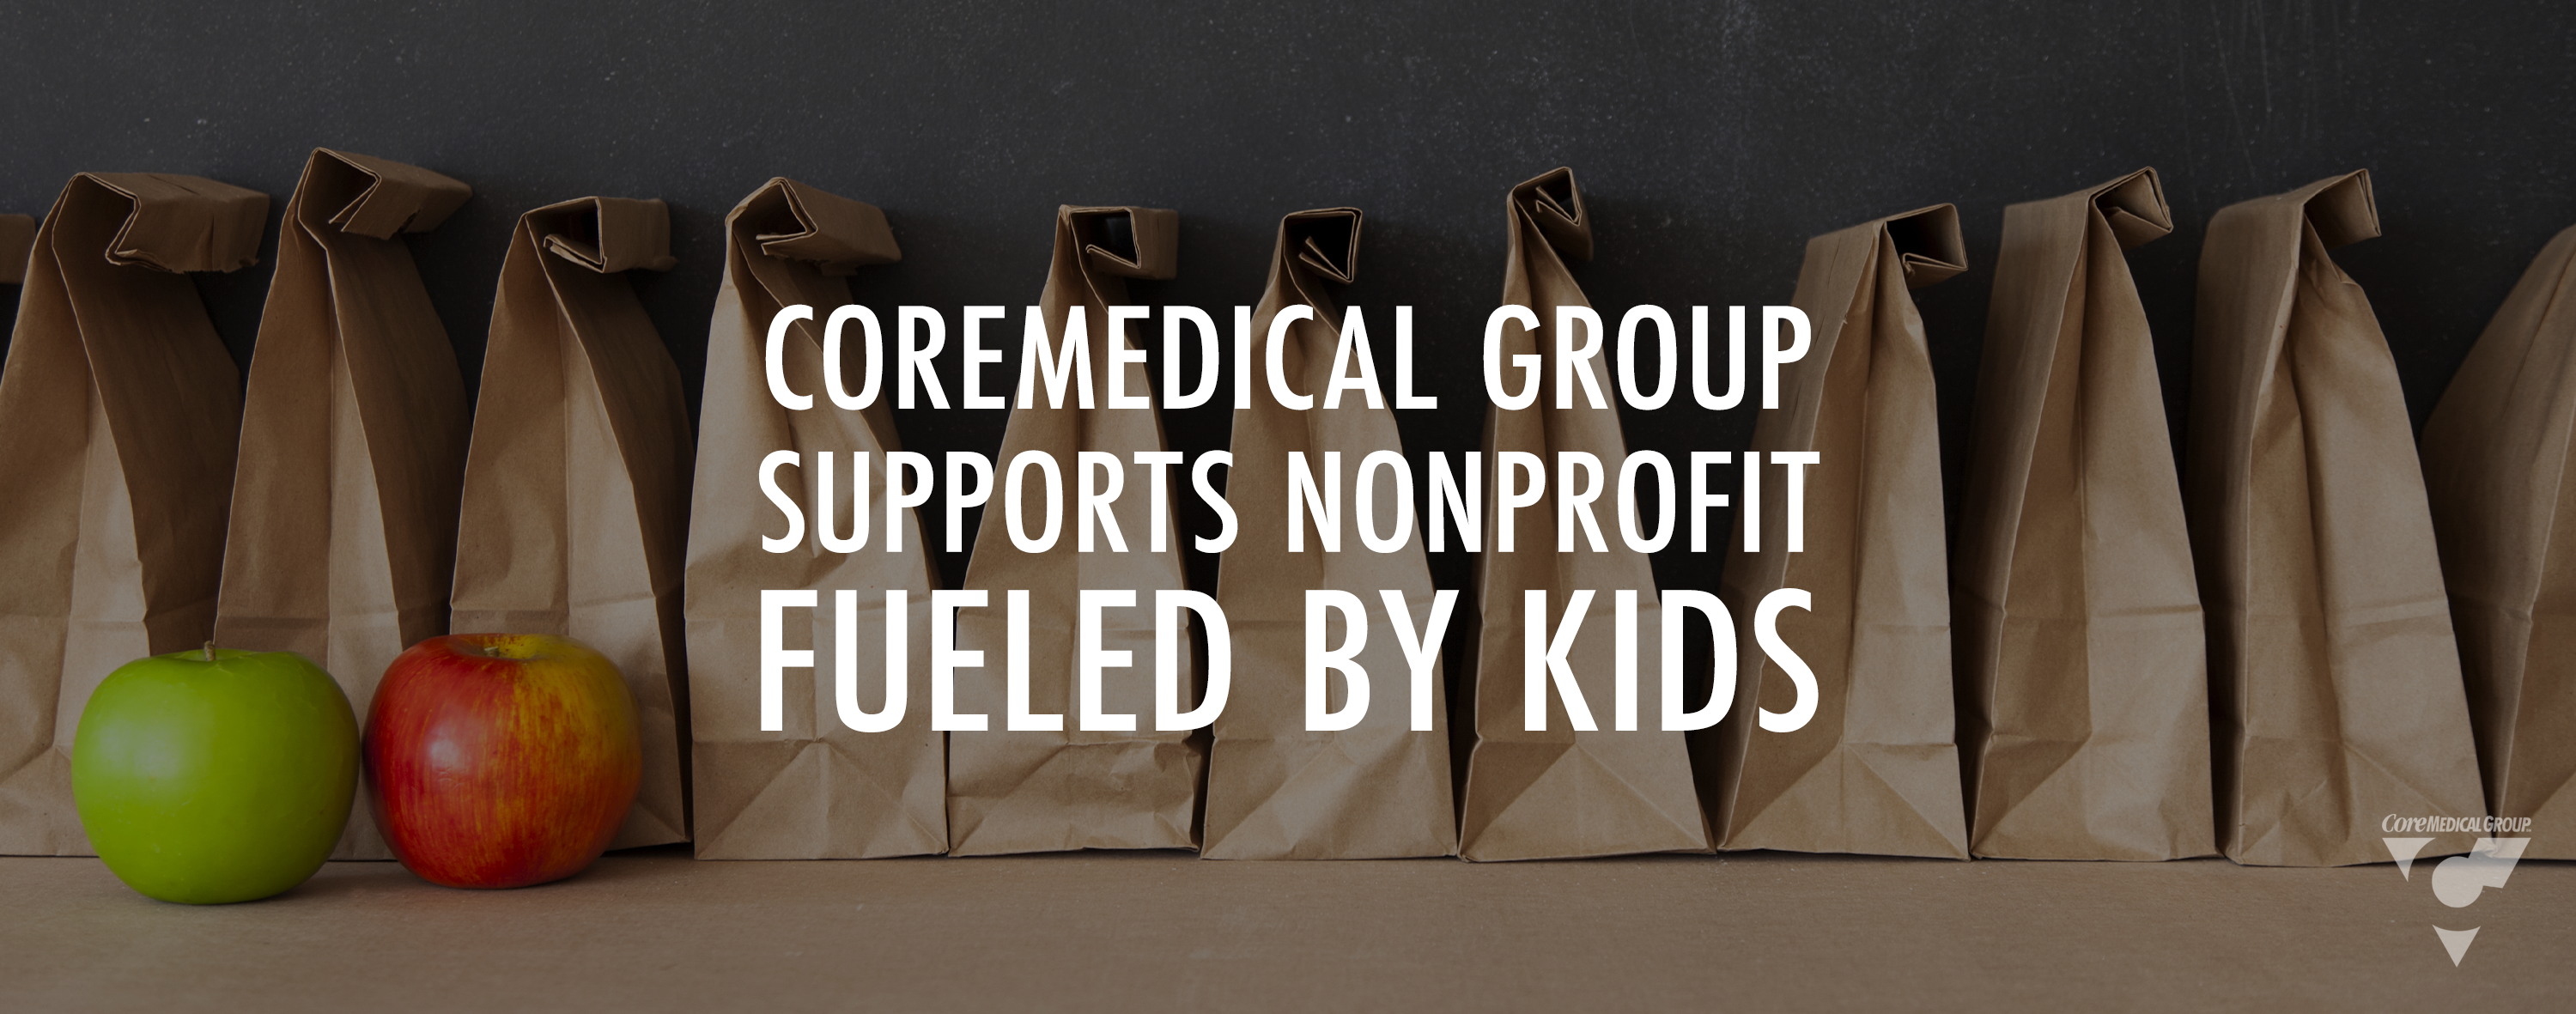 CMG_Blog_Featuredimages_Supports_Nonprofit_Fueled_By_Kids_Blog